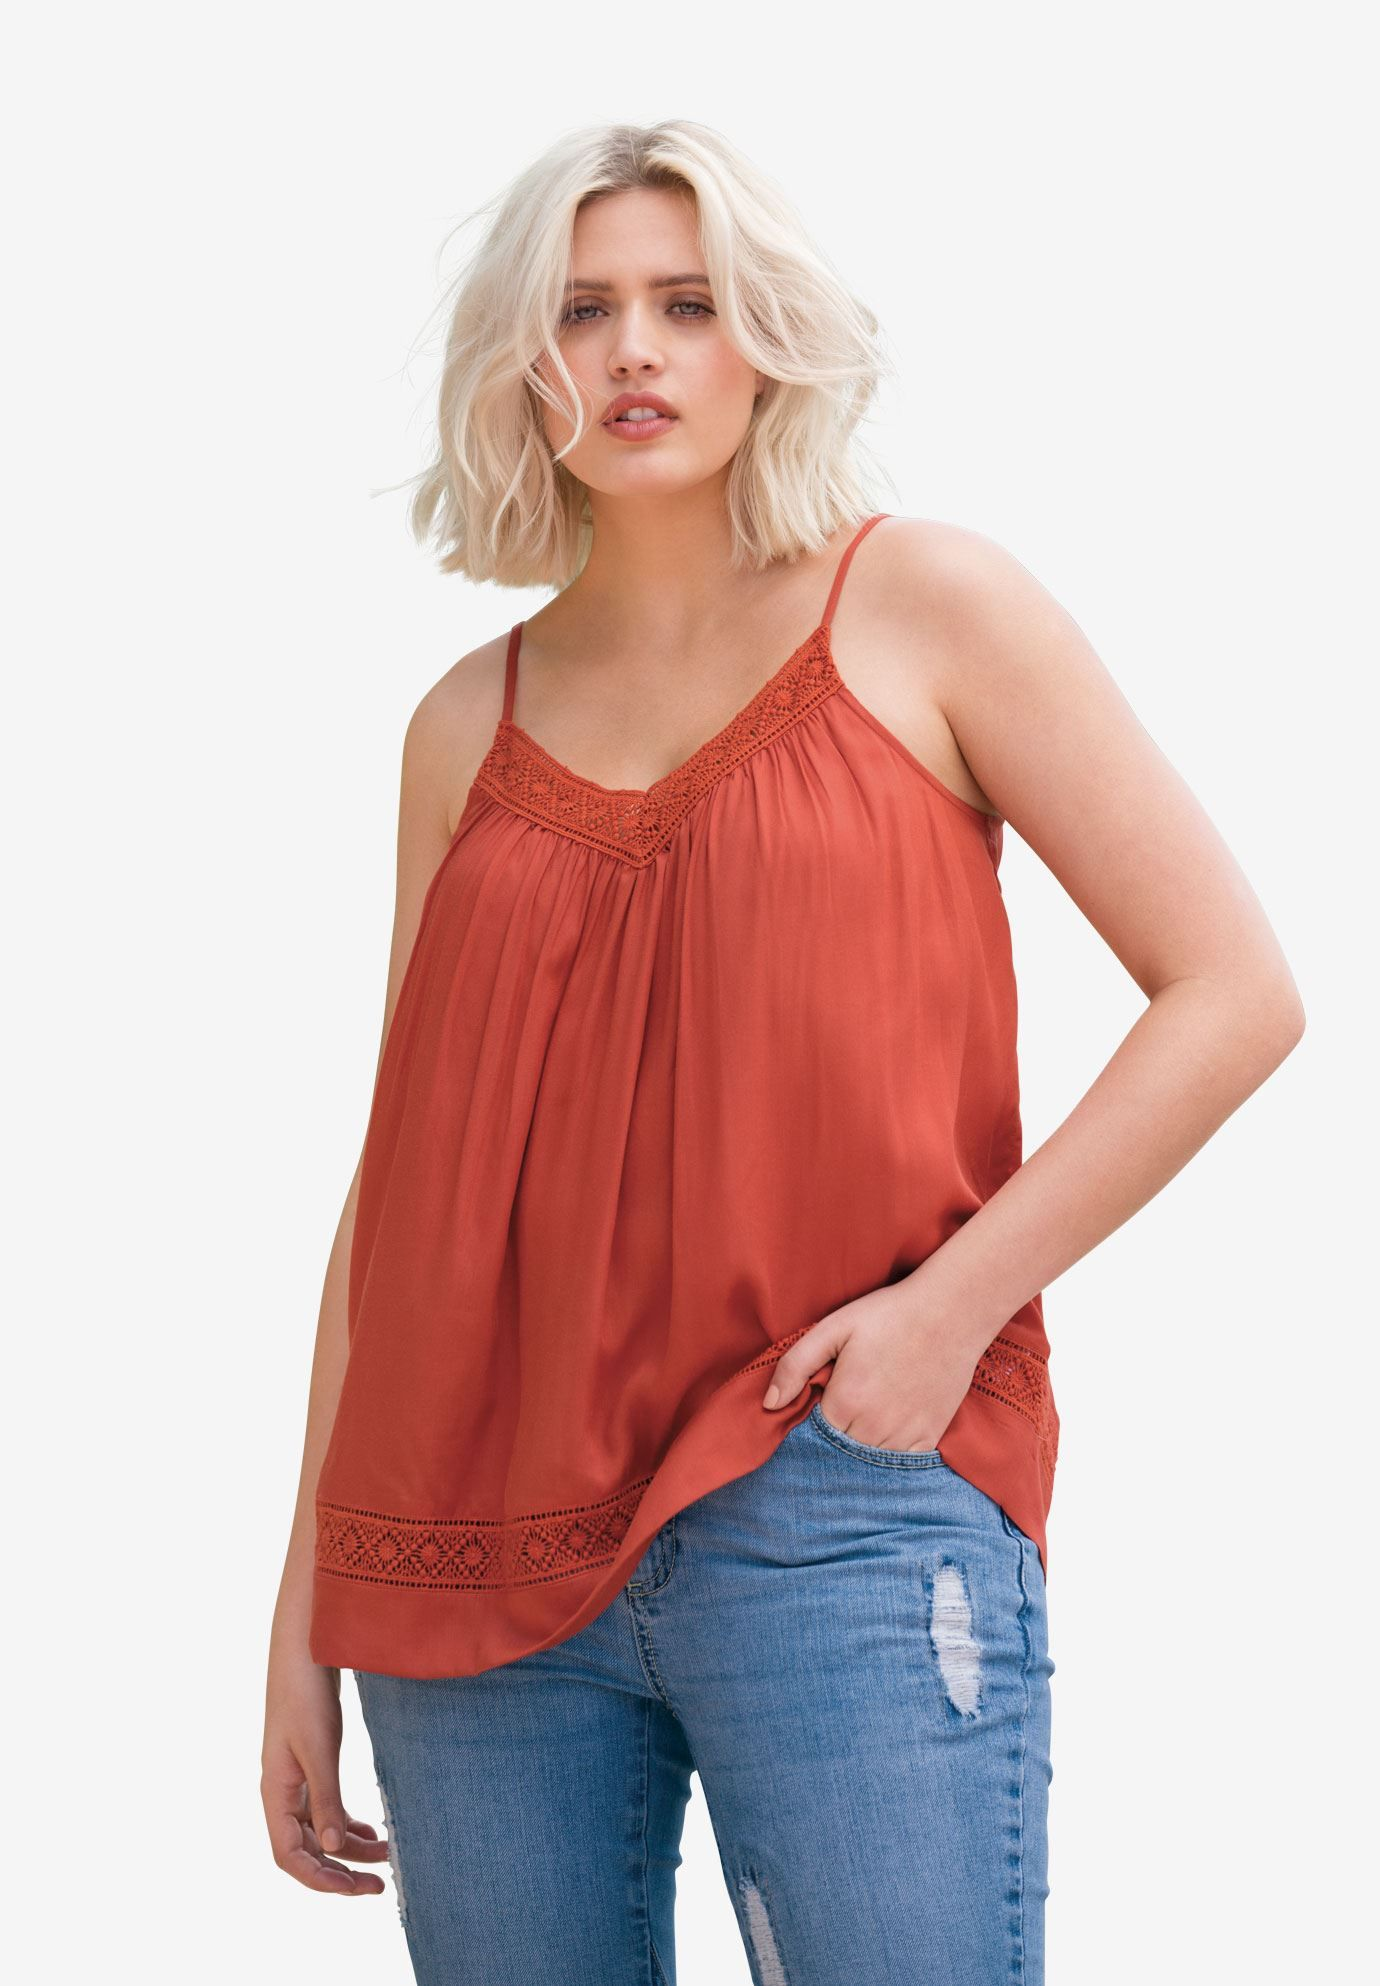 fd1ae91ee2d17 Shop for Crochet Lace Trim Tank Top and more Plus Size Tees   Tanks from  Ellos.